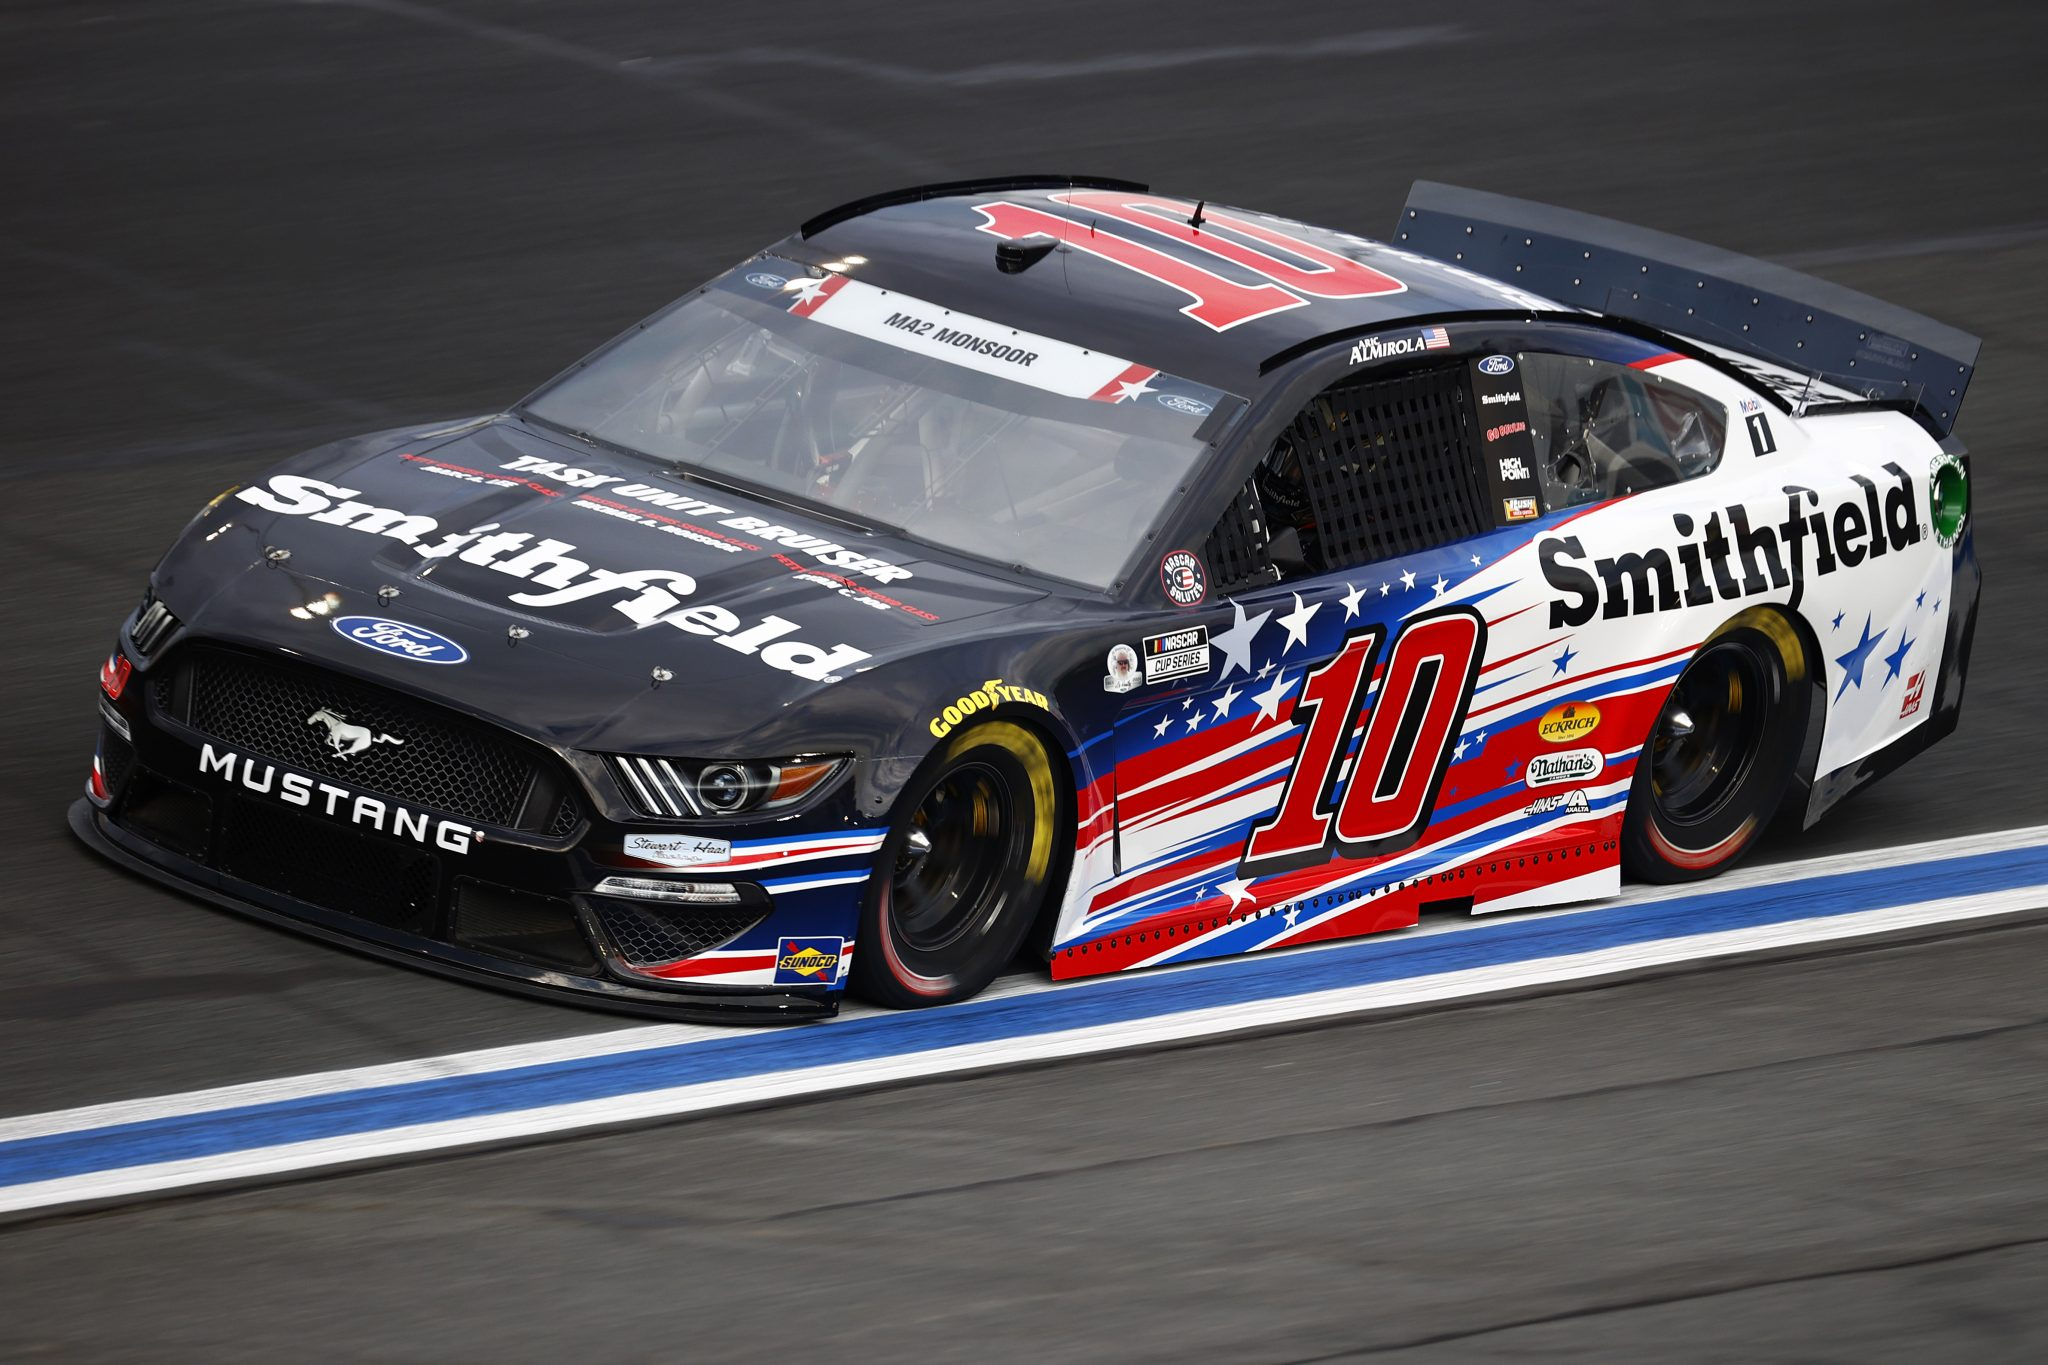 CONCORD, NORTH CAROLINA - MAY 28: Aric Almirola, driver of the #10 Smithfield Ford, drives during practice for the NASCAR Cup Series Coca-Cola 600 at Charlotte Motor Speedway on May 28, 2021 in Concord, North Carolina. (Photo by Jared C. Tilton/Getty Images) | Getty Images